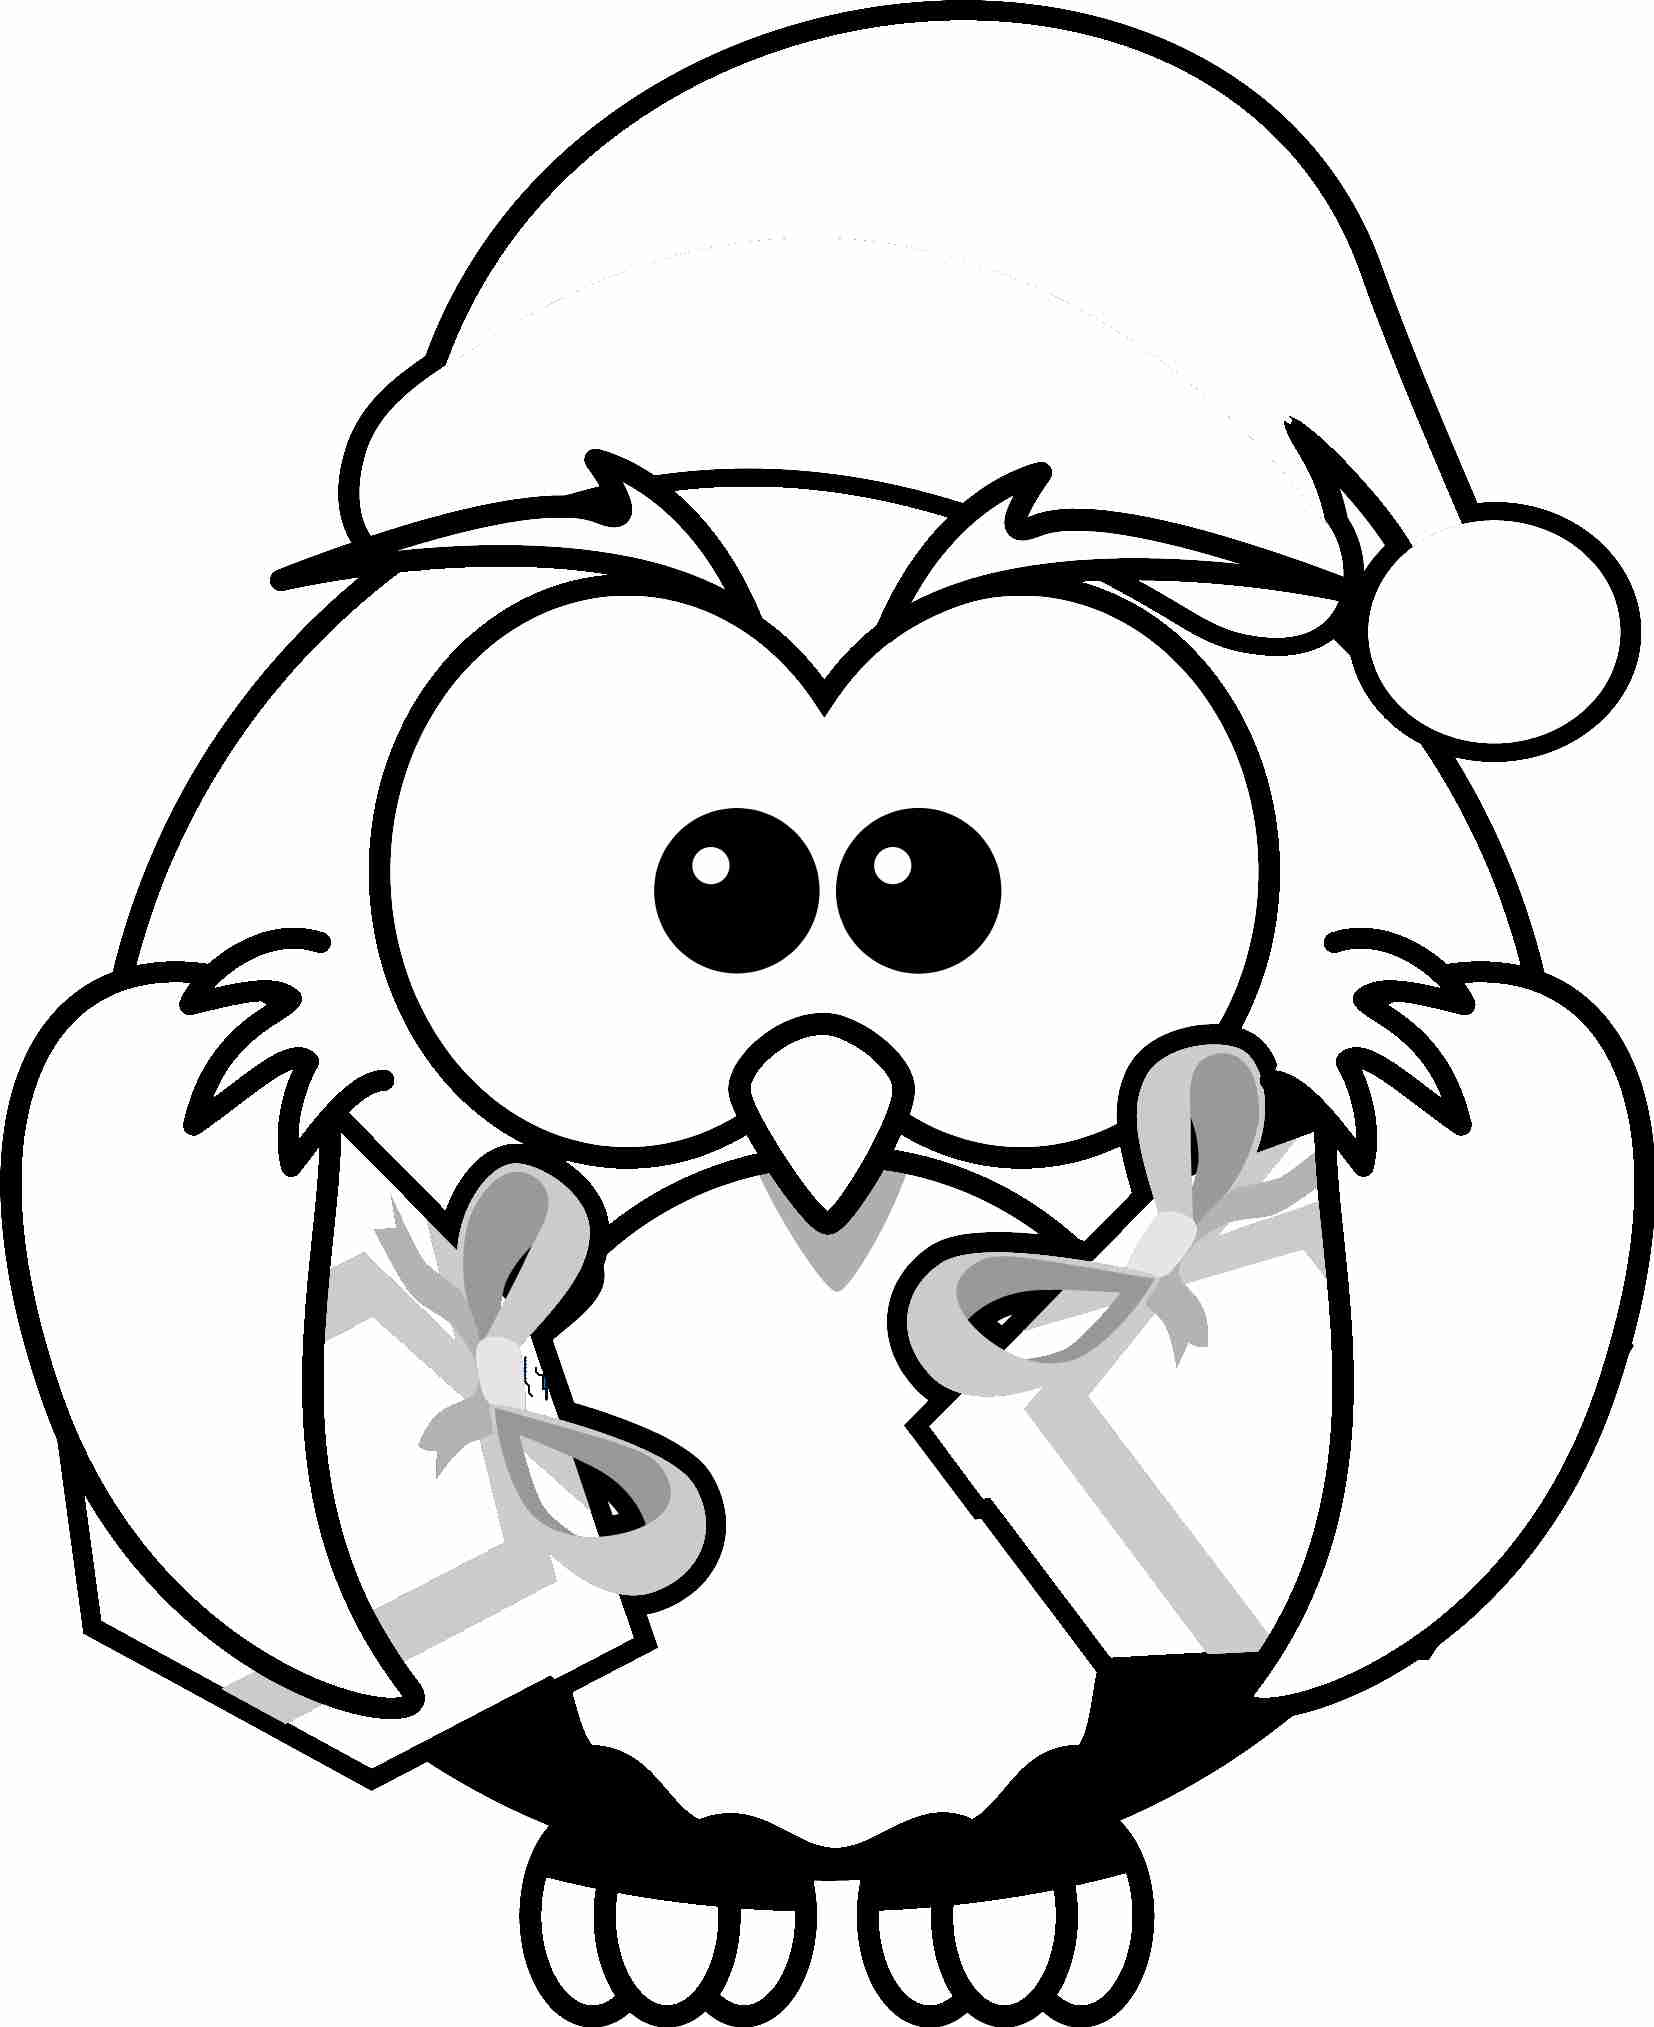 1654x2027 christmaspenguin